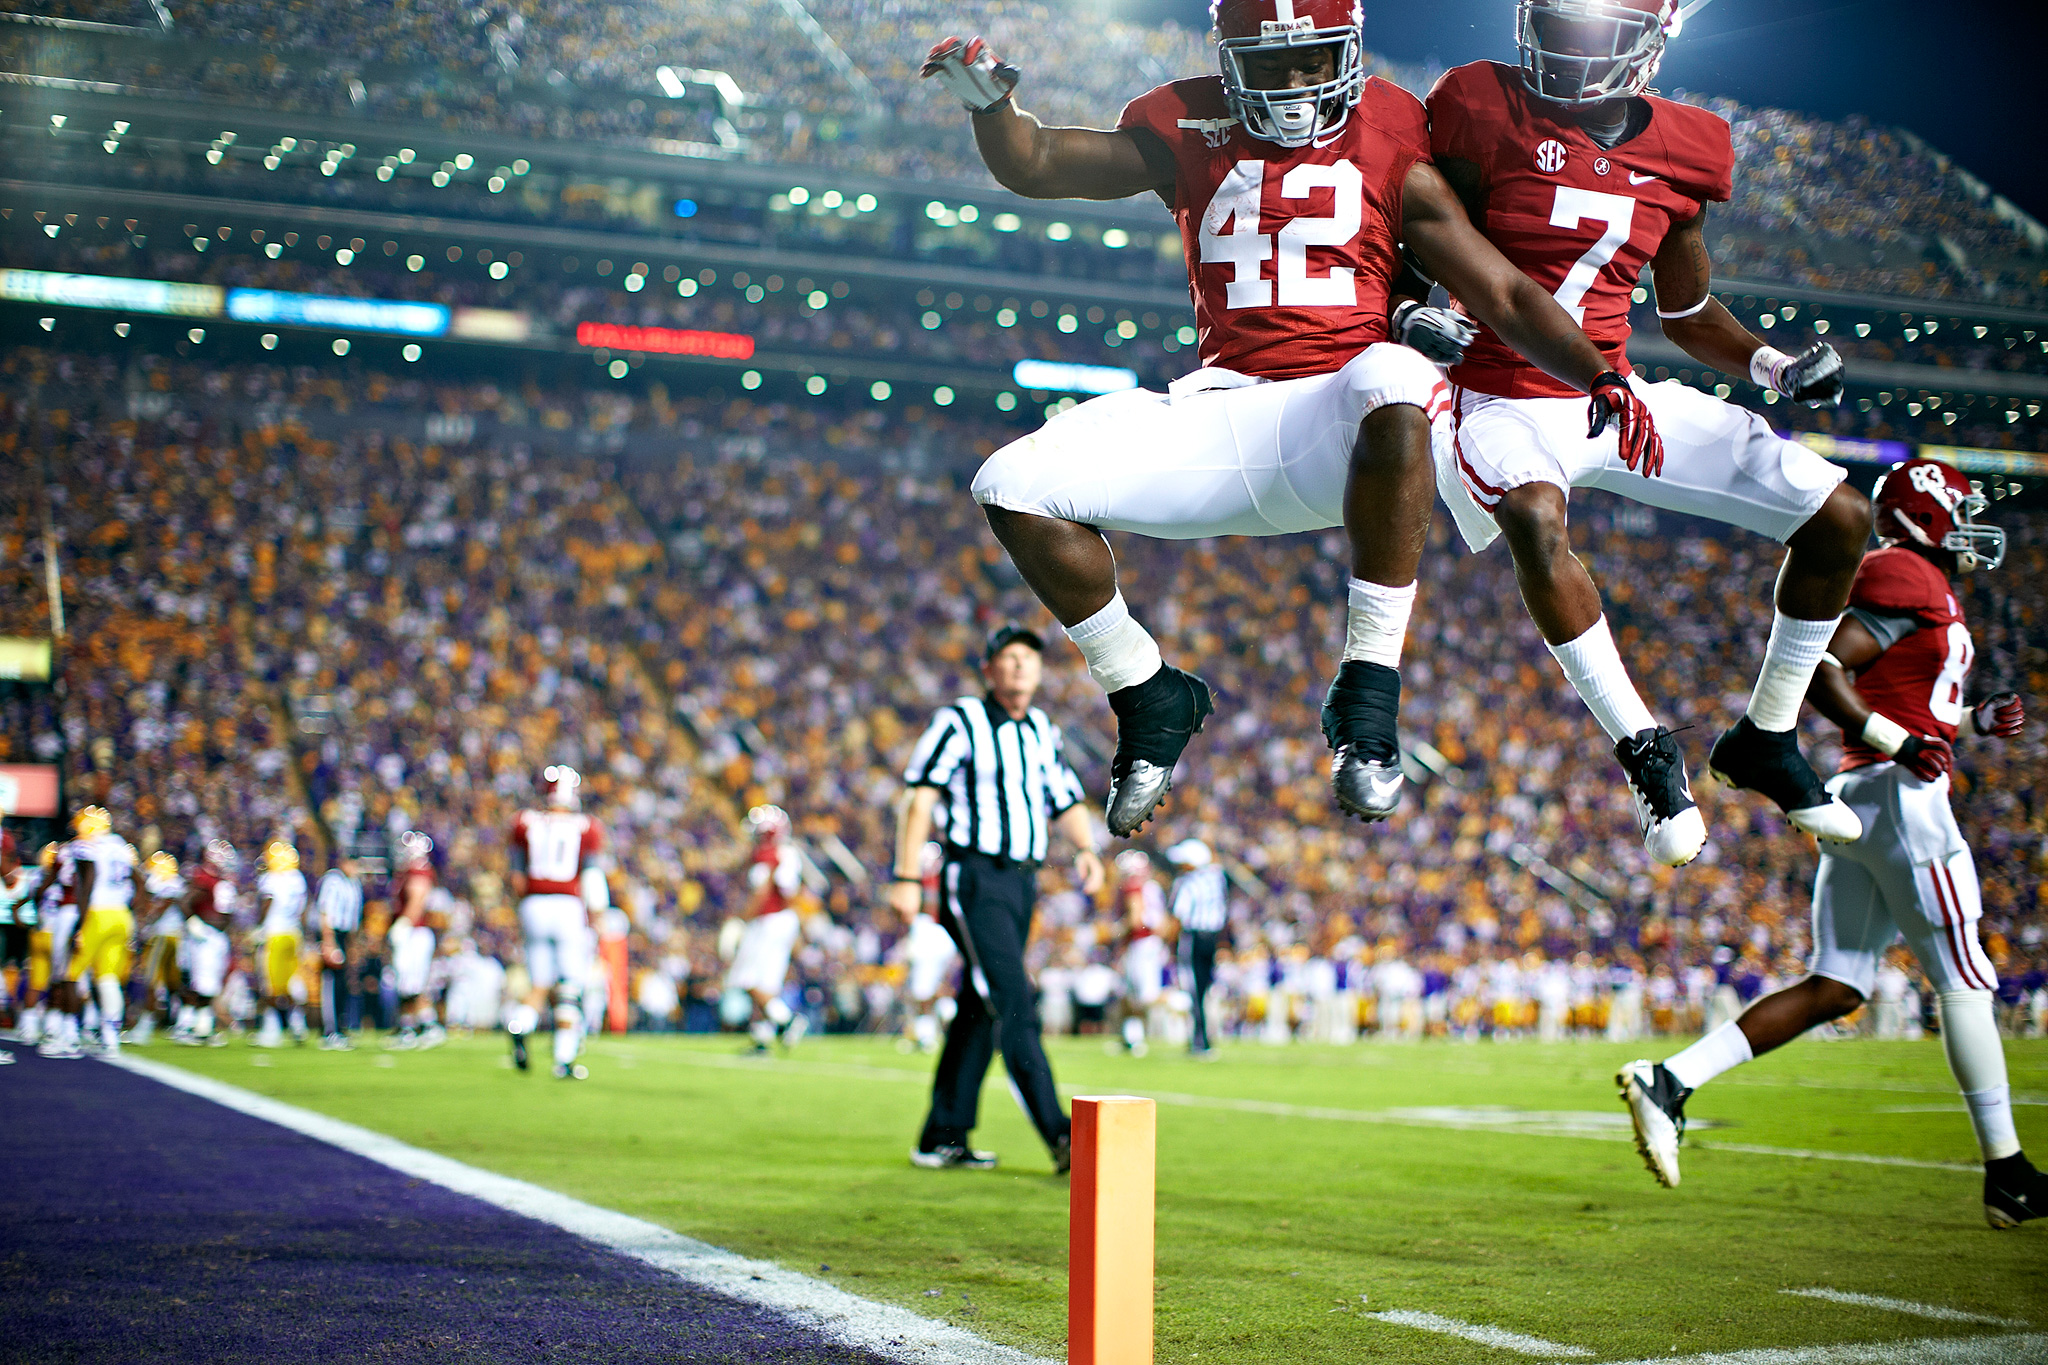 Two Alabama Players Celebrating in Death Valley photoshopbattles